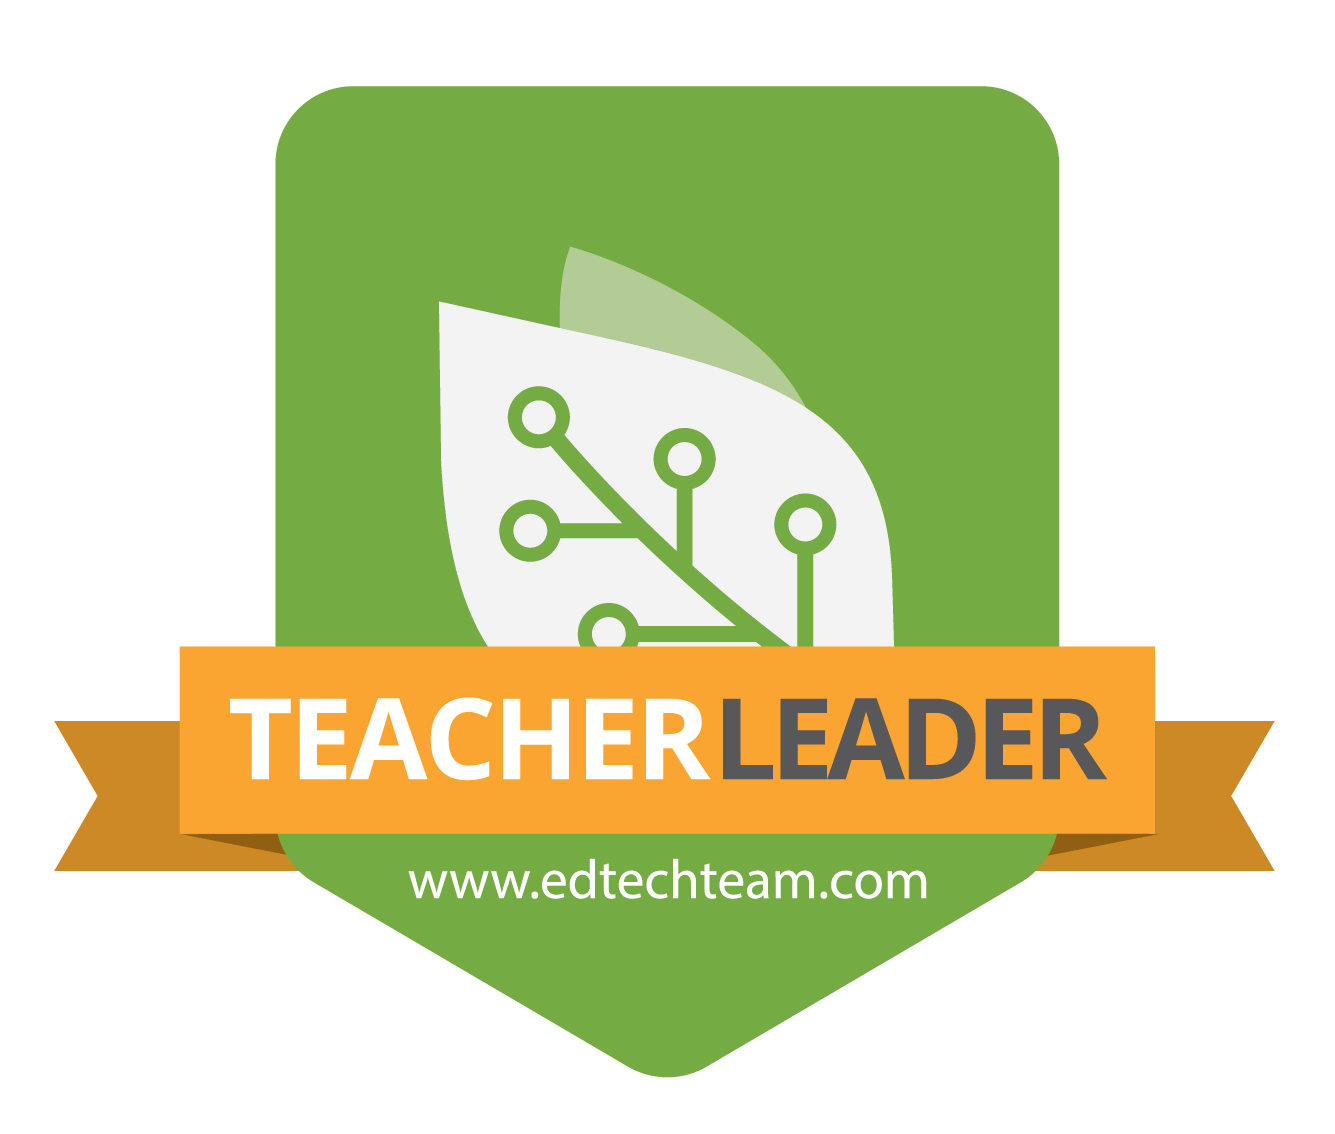 Teacher Leader